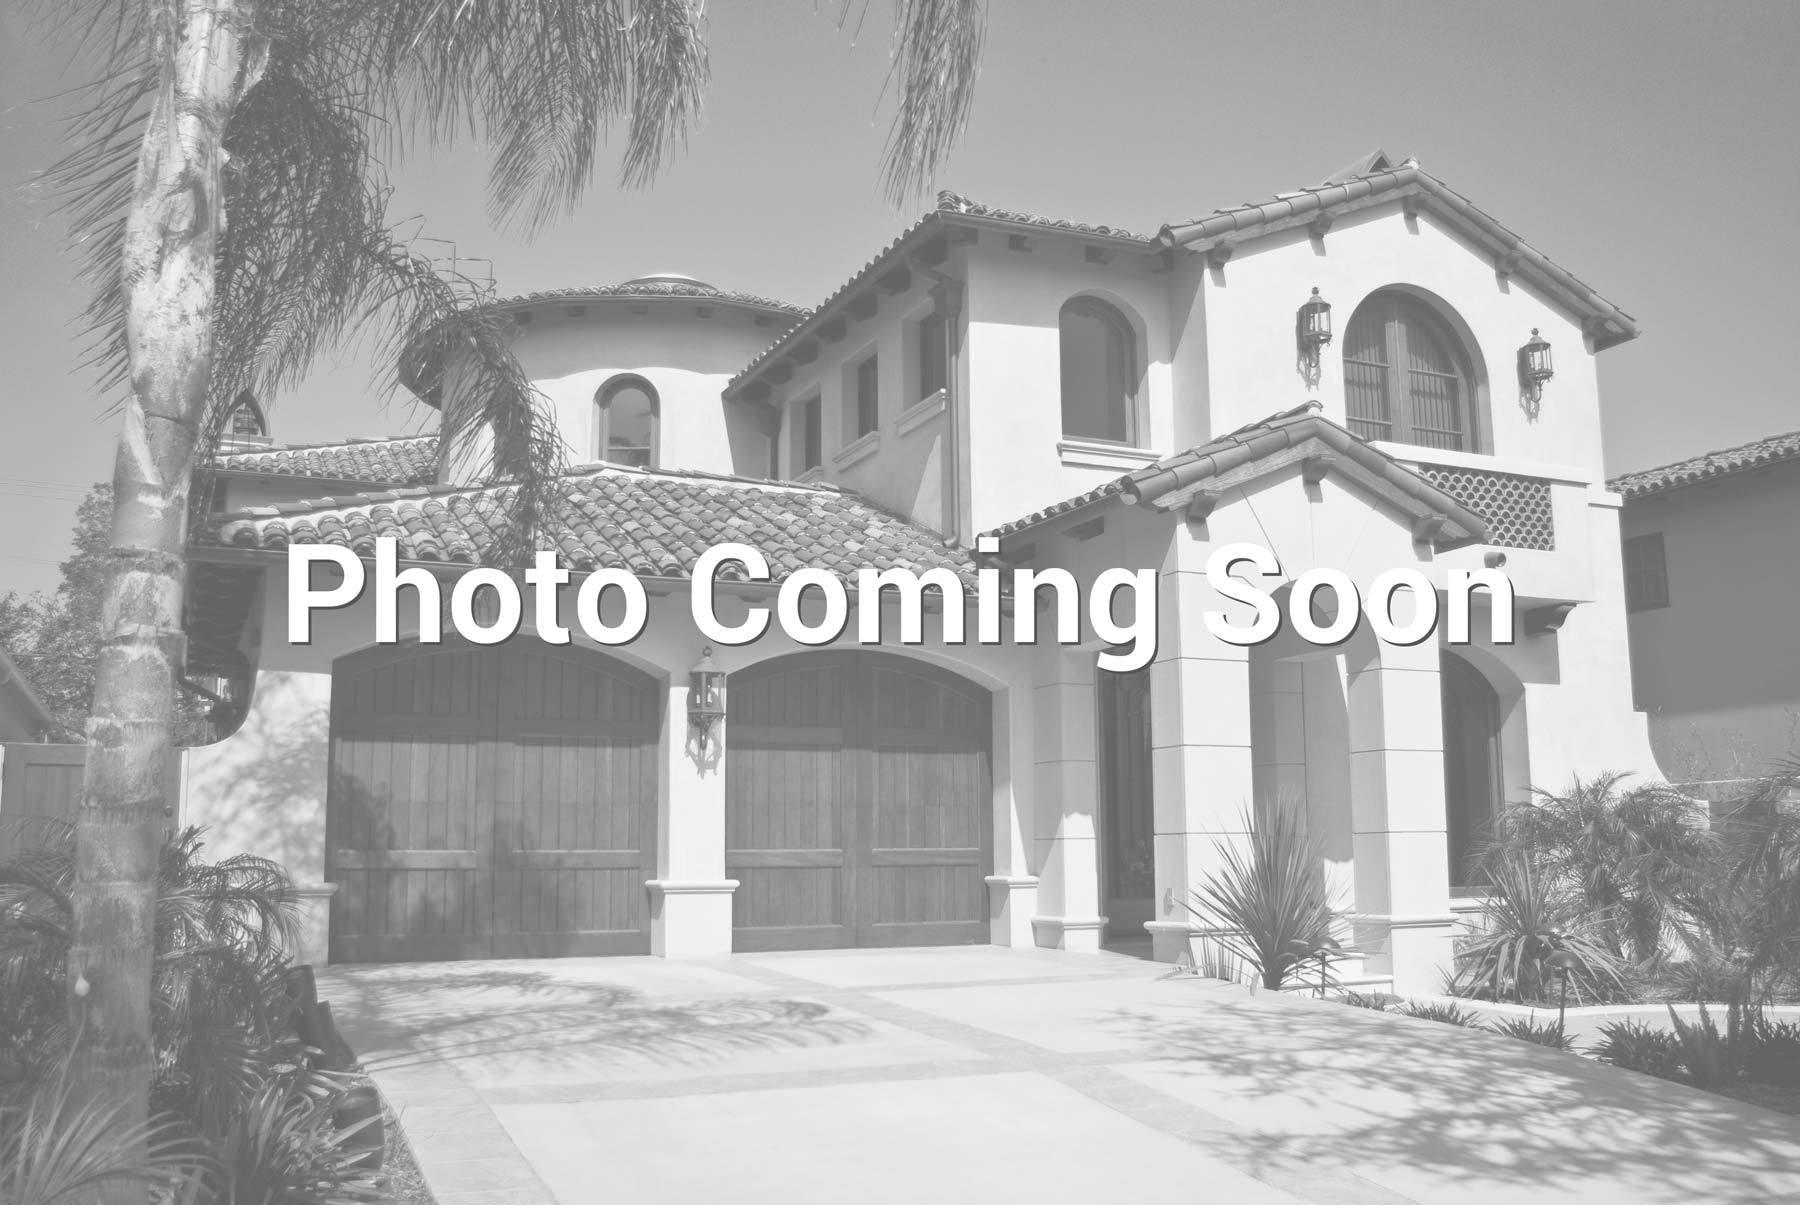 $685,000 - 4Br/3Ba - Home for Sale in Scottsdale Ranch 5-b Lot 1-78 Tr A, Scottsdale